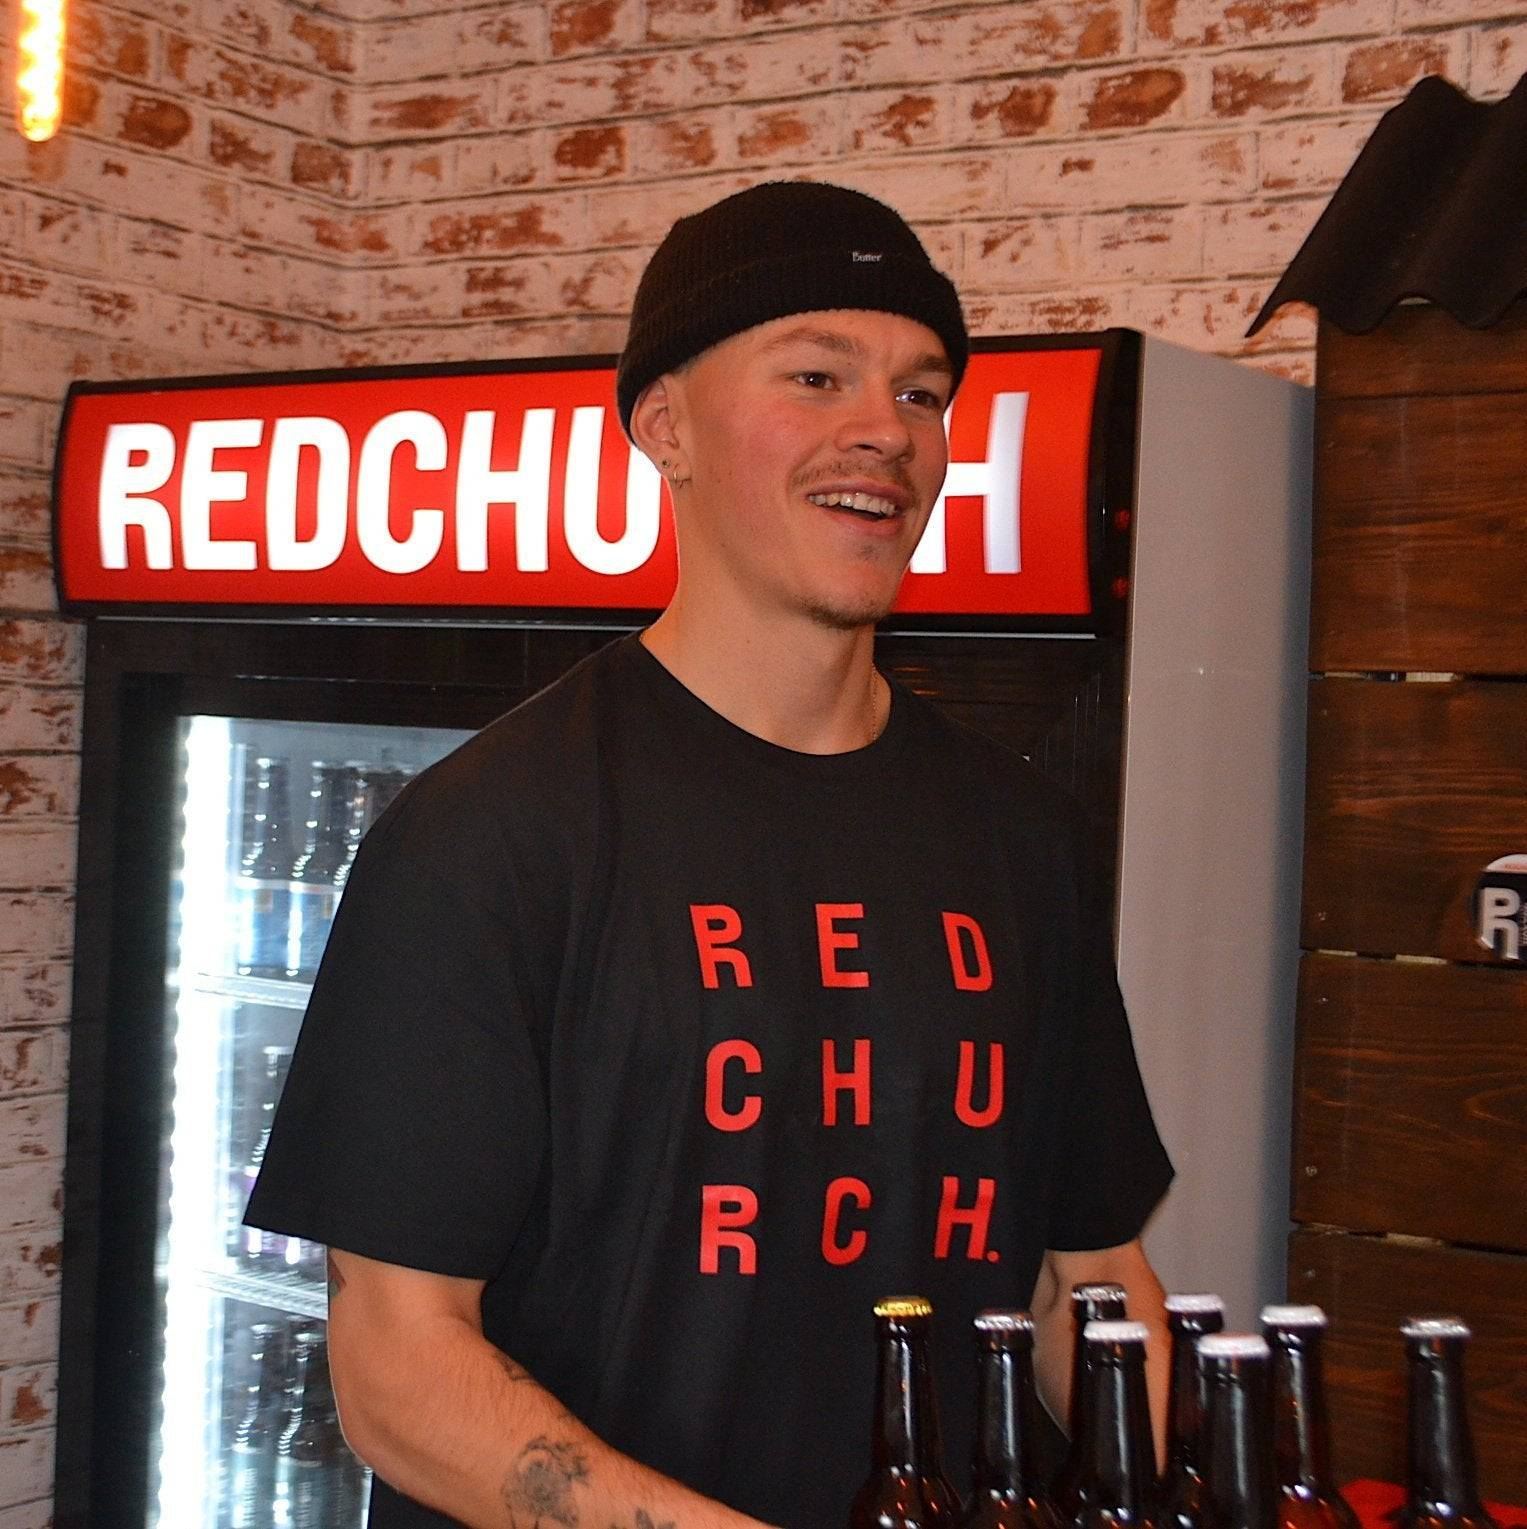 Redchurch Brewery Redchurch 9 Letter T-Shirt - Large  42-44